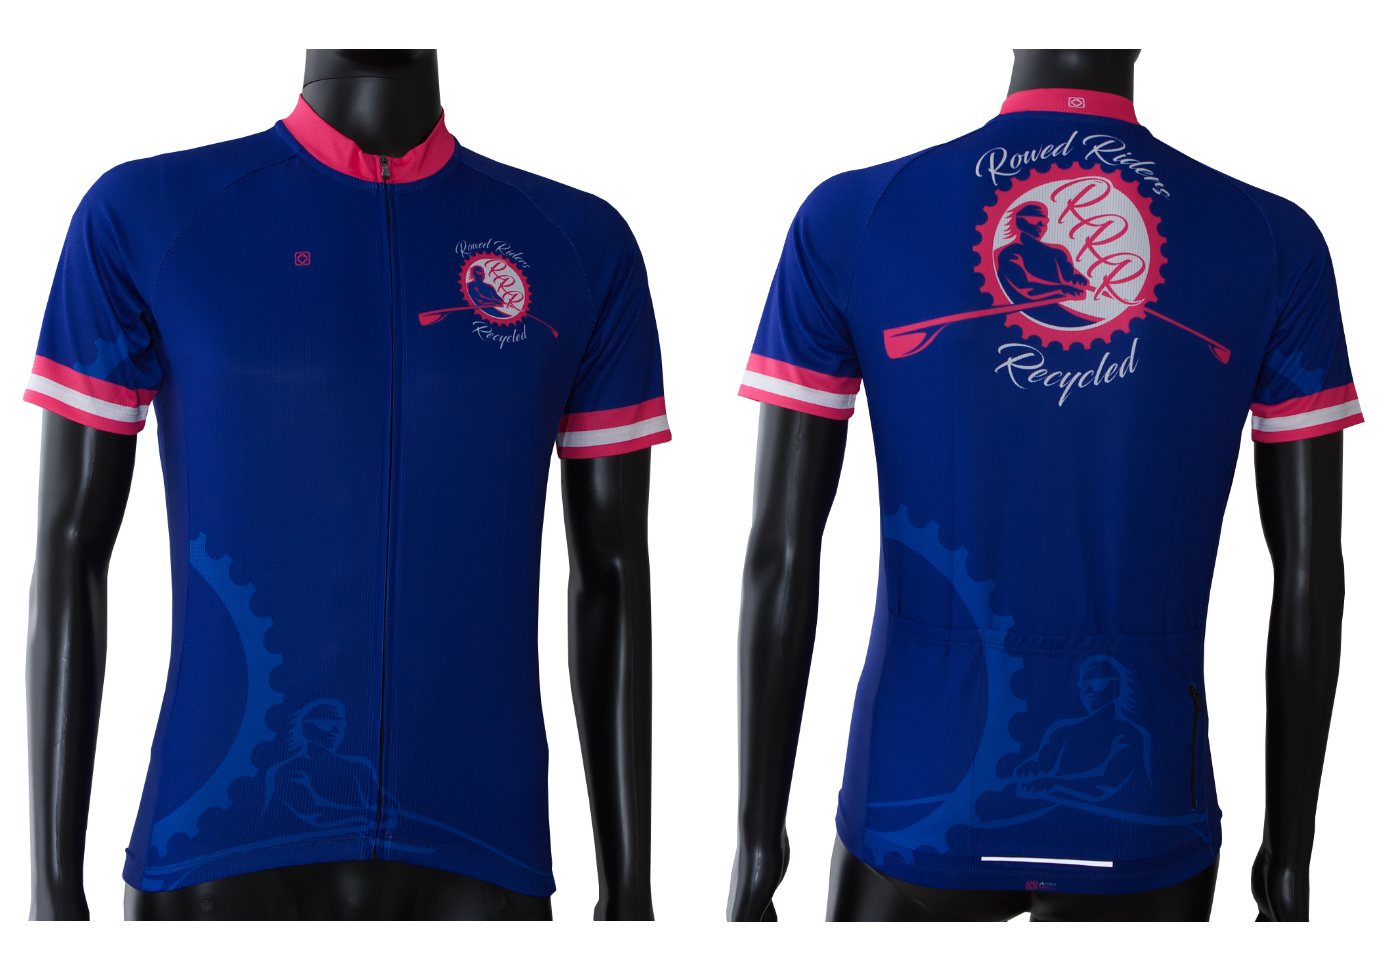 custom designed cycling jersey astro visual